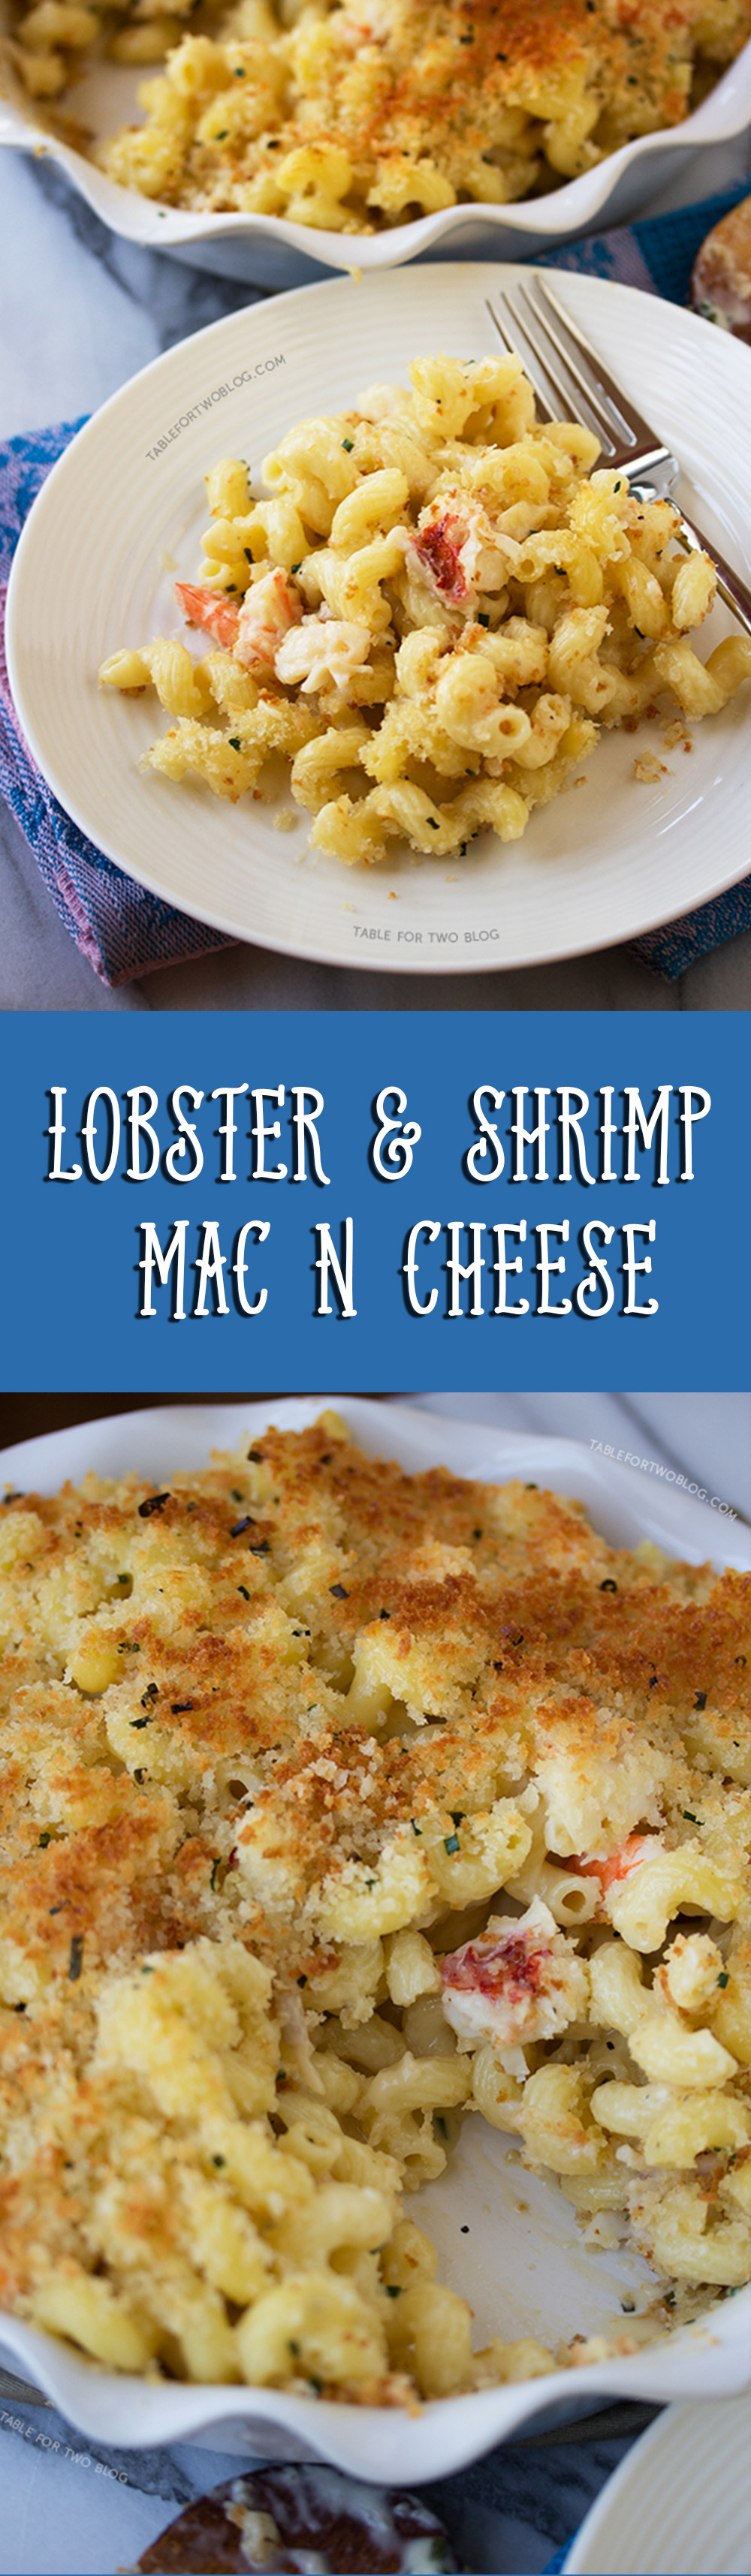 Get your monies worth and make this lobster and shrimp mac 'n cheese at home! You can have a bite of seafood in EVERY bite instead of restaurants skimping on you!